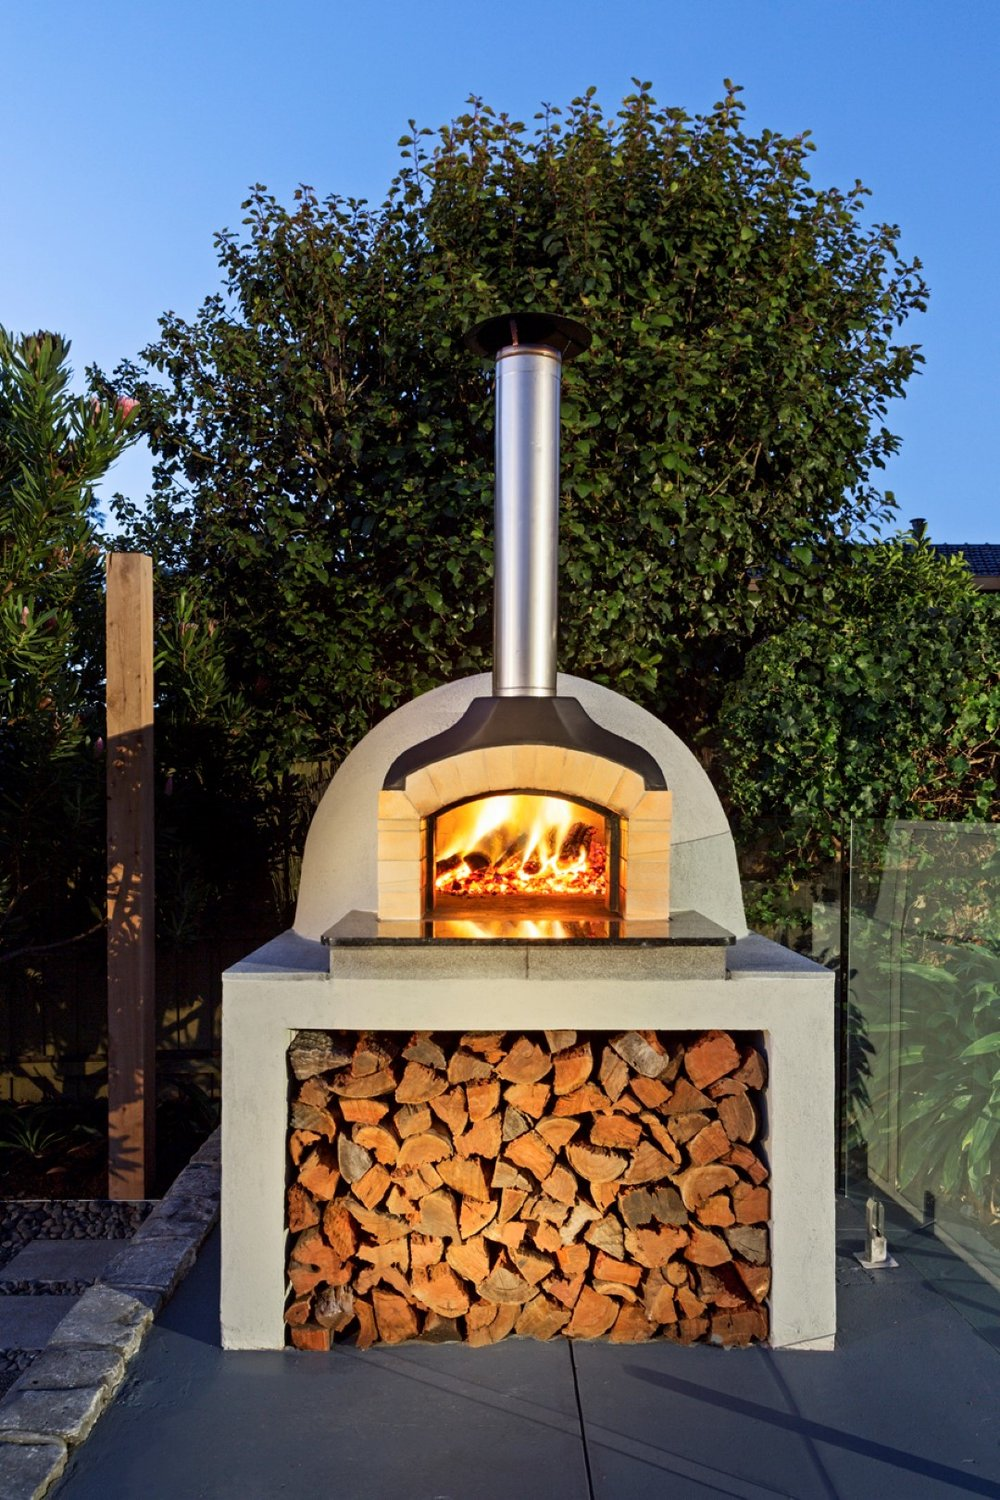 Alistair's D105 Brick Oven